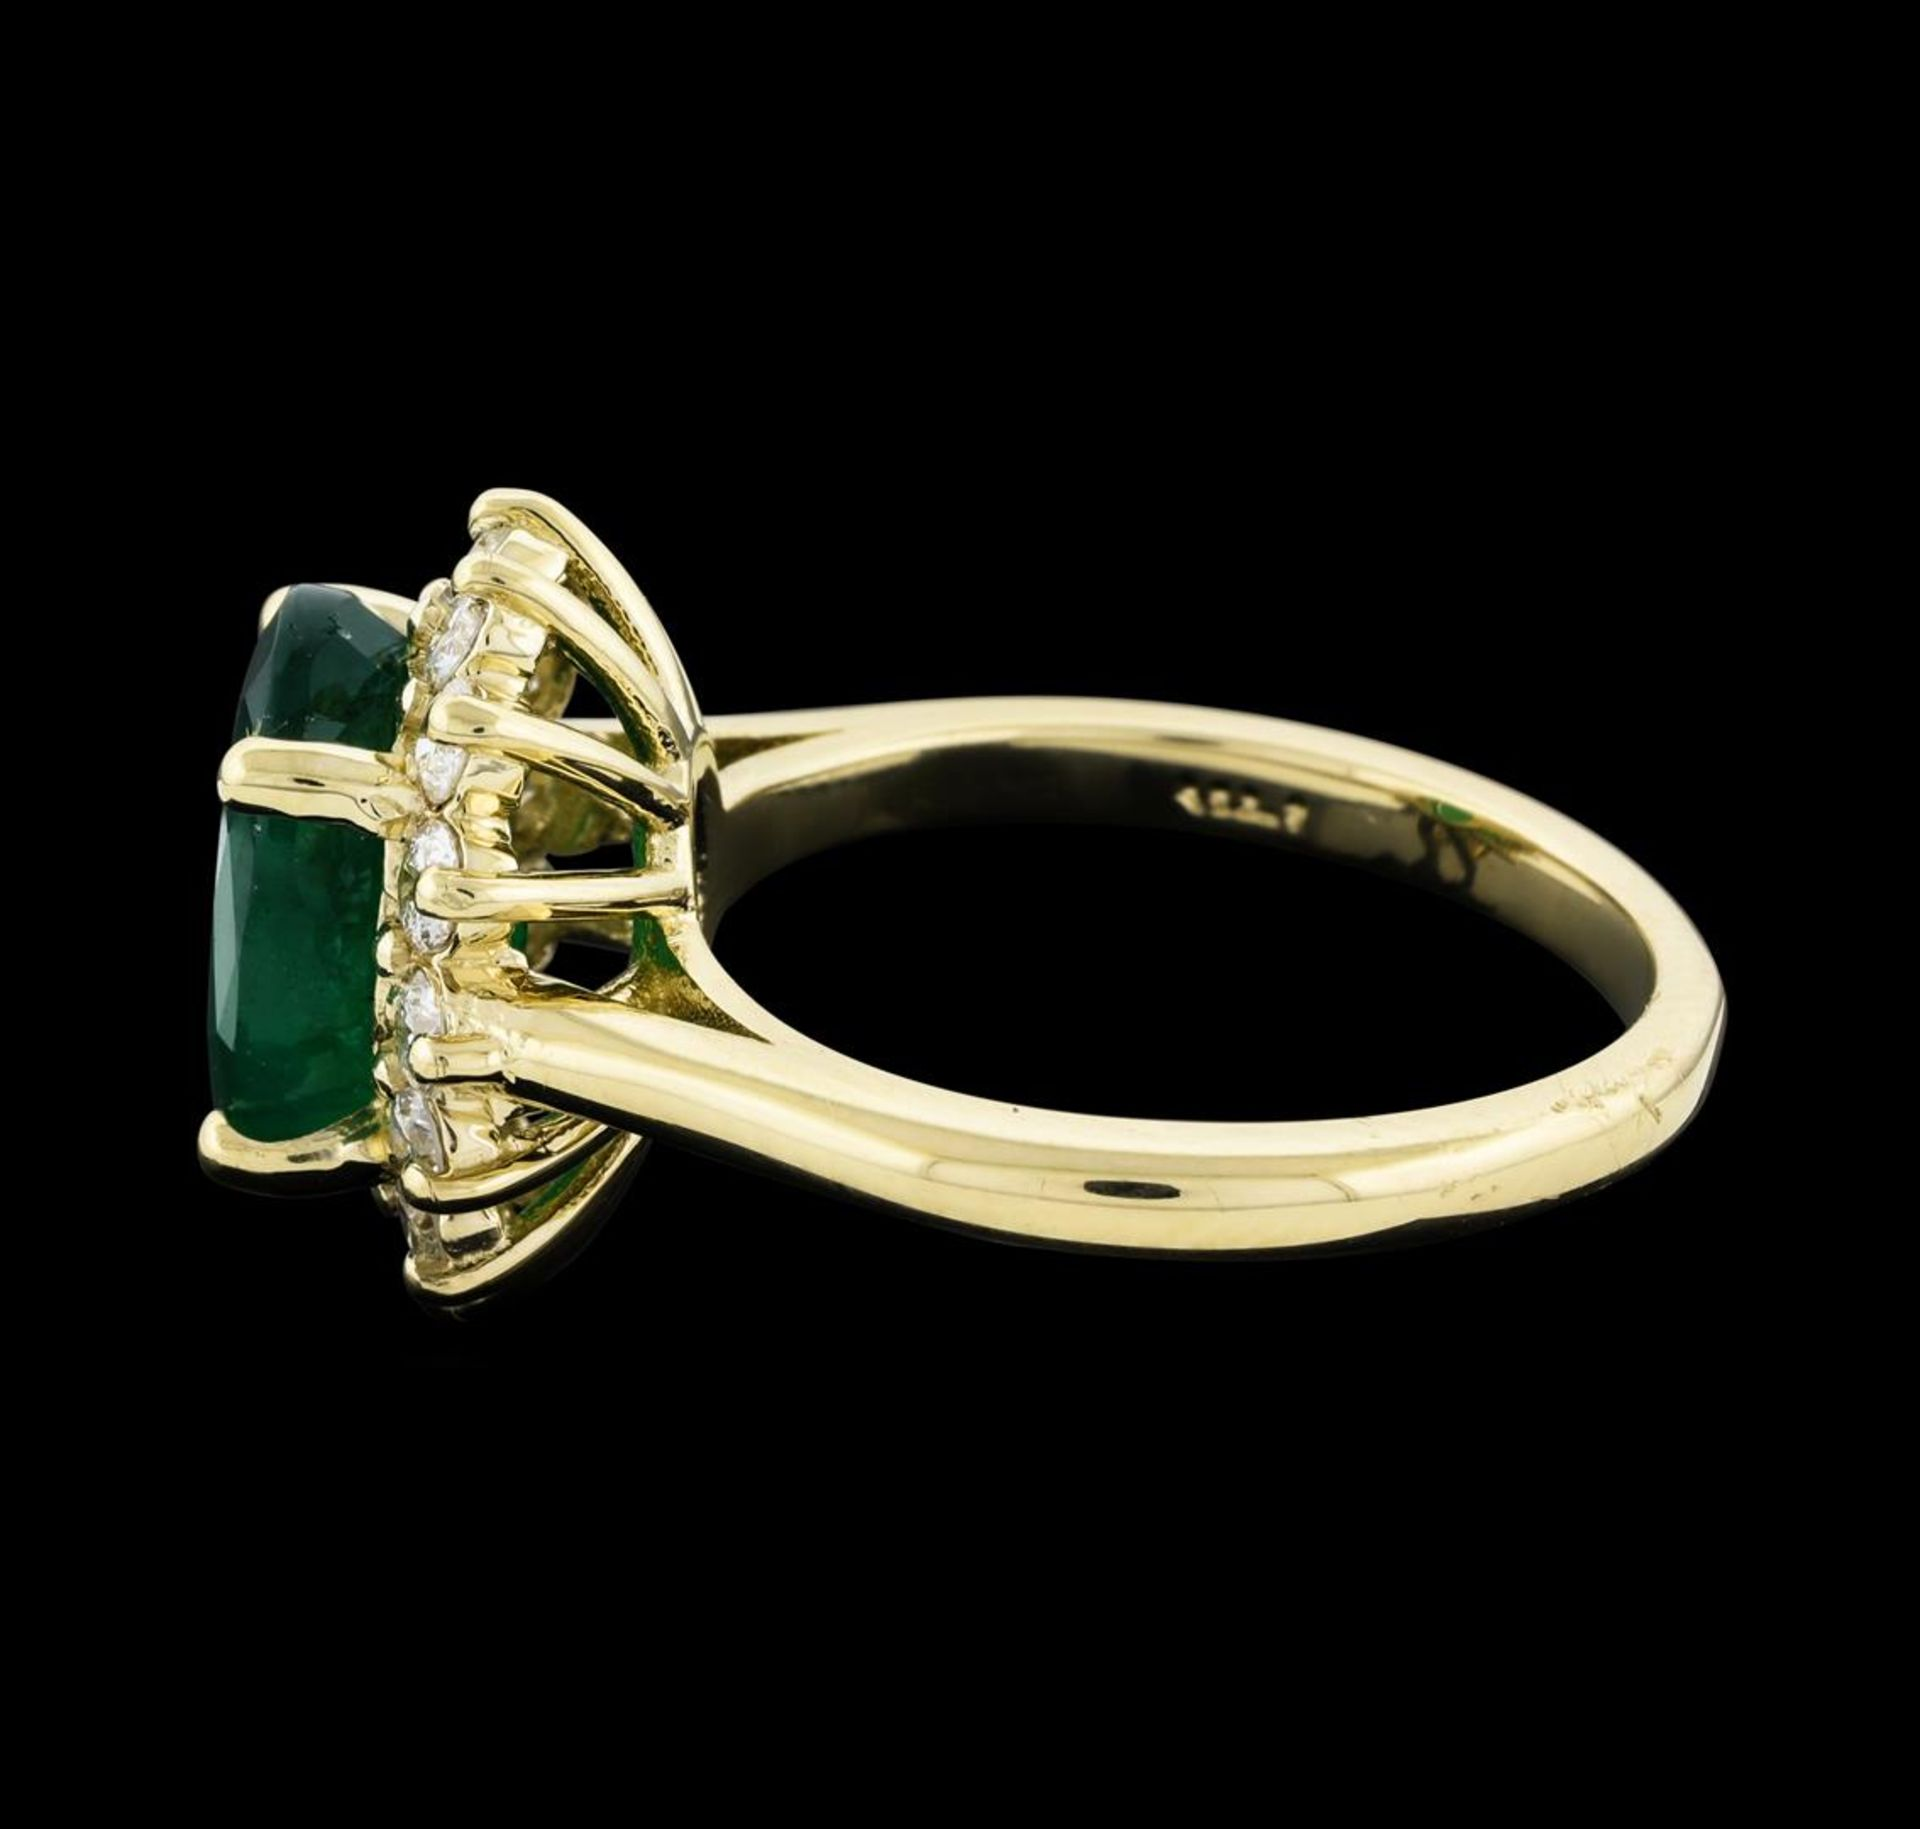 3.40 ctw Emerald and Diamond Ring - 14KT Yellow Gold - Image 3 of 5